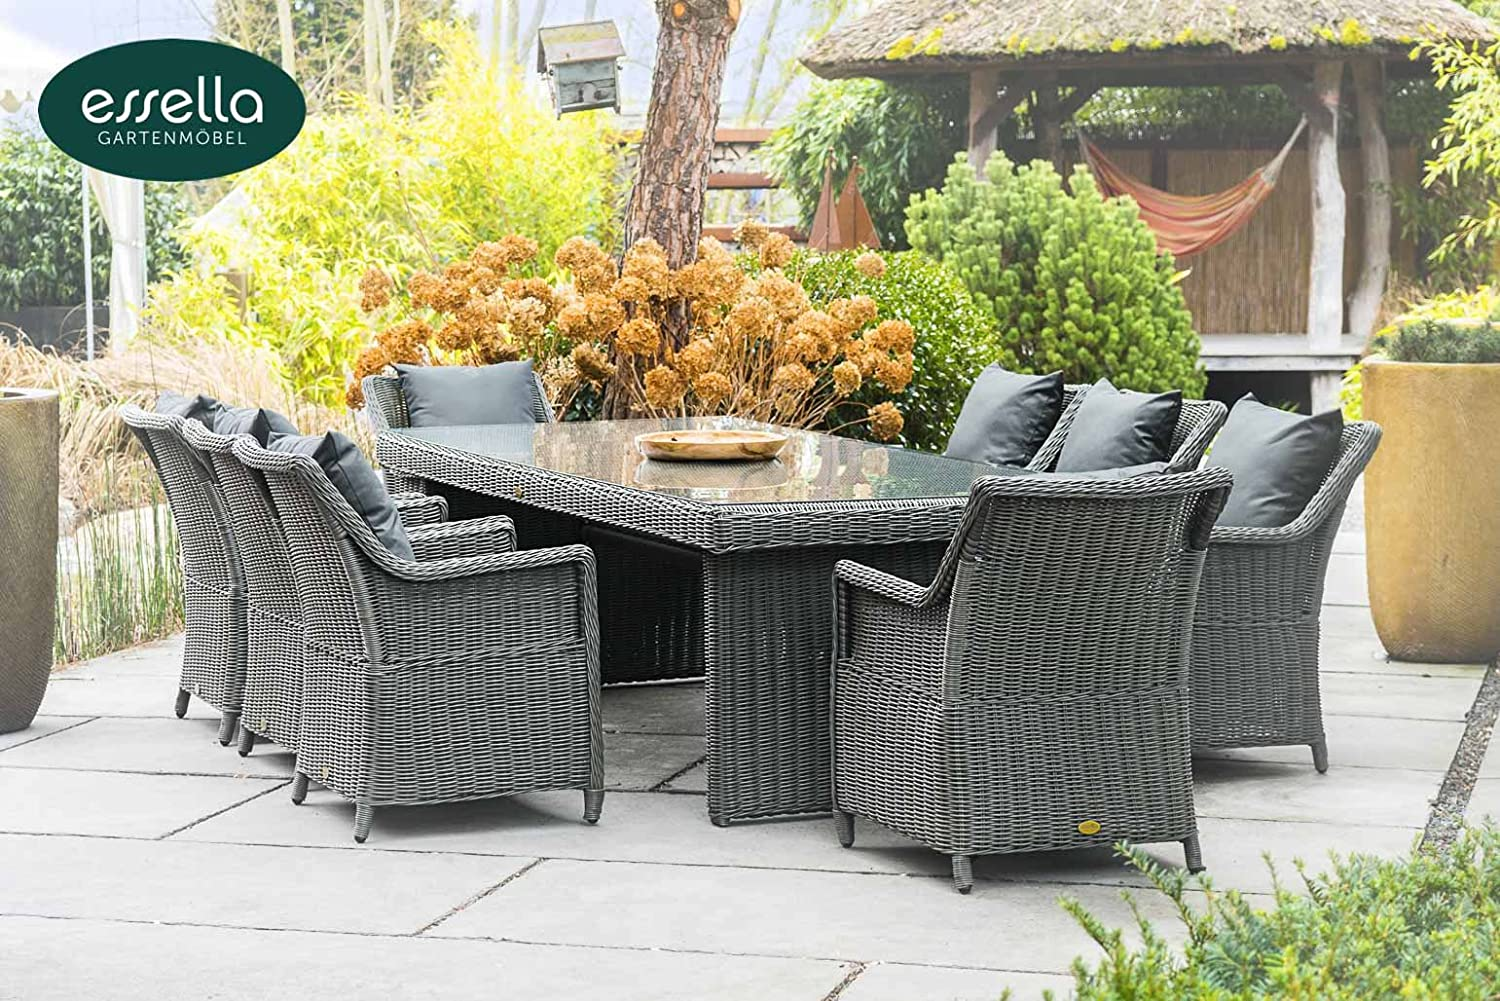 polyrattan sitzgruppe dubai 8 personen rundgeflecht grau rund gartenm bel. Black Bedroom Furniture Sets. Home Design Ideas